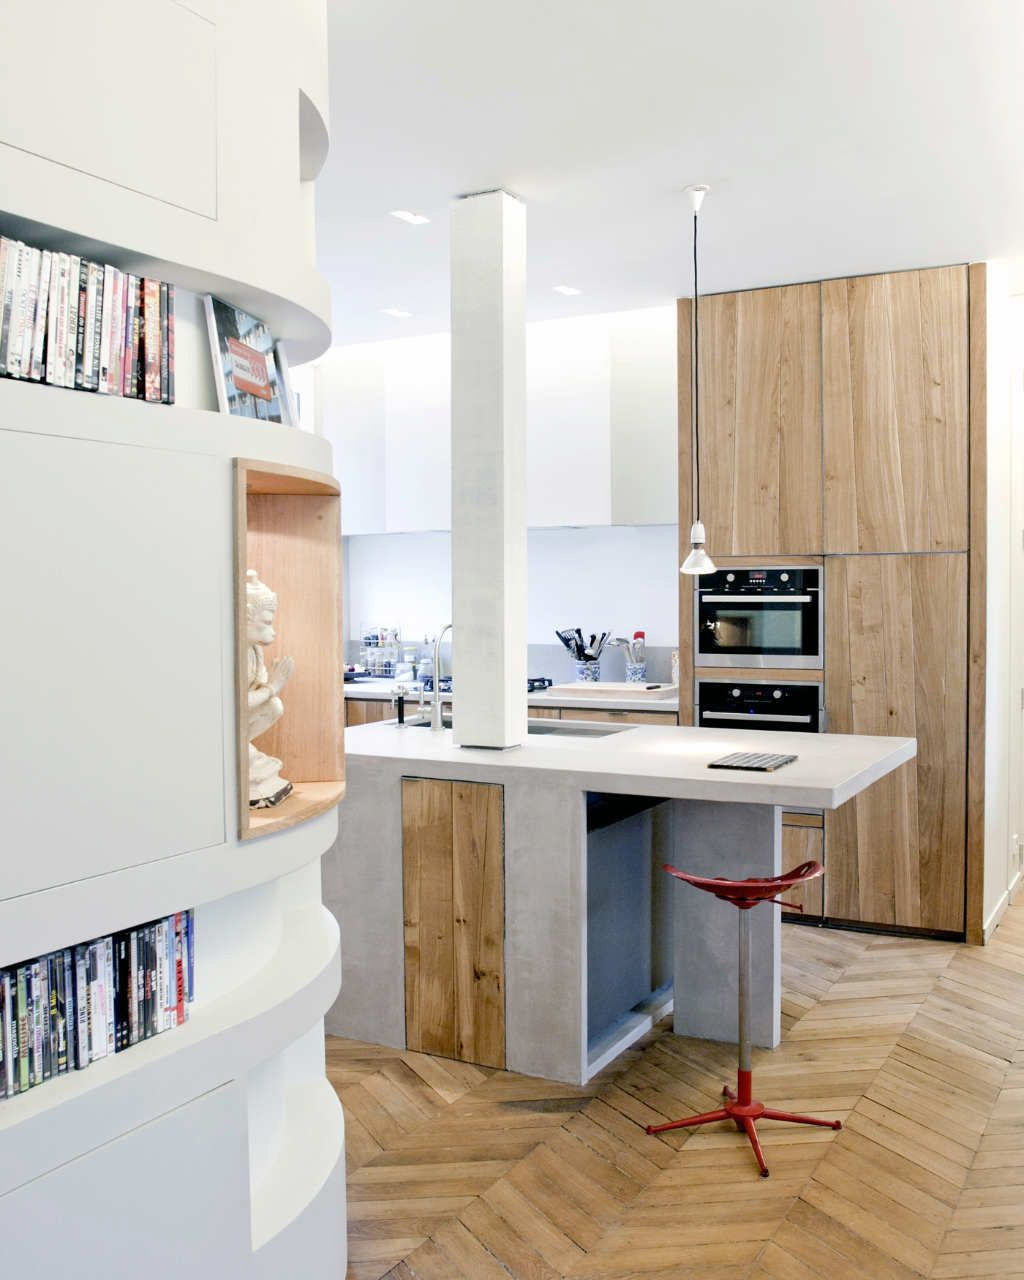 Kitchen Cabinets Small Space: 20 Minimalist Modern Kitchen Tables For Small Spaces